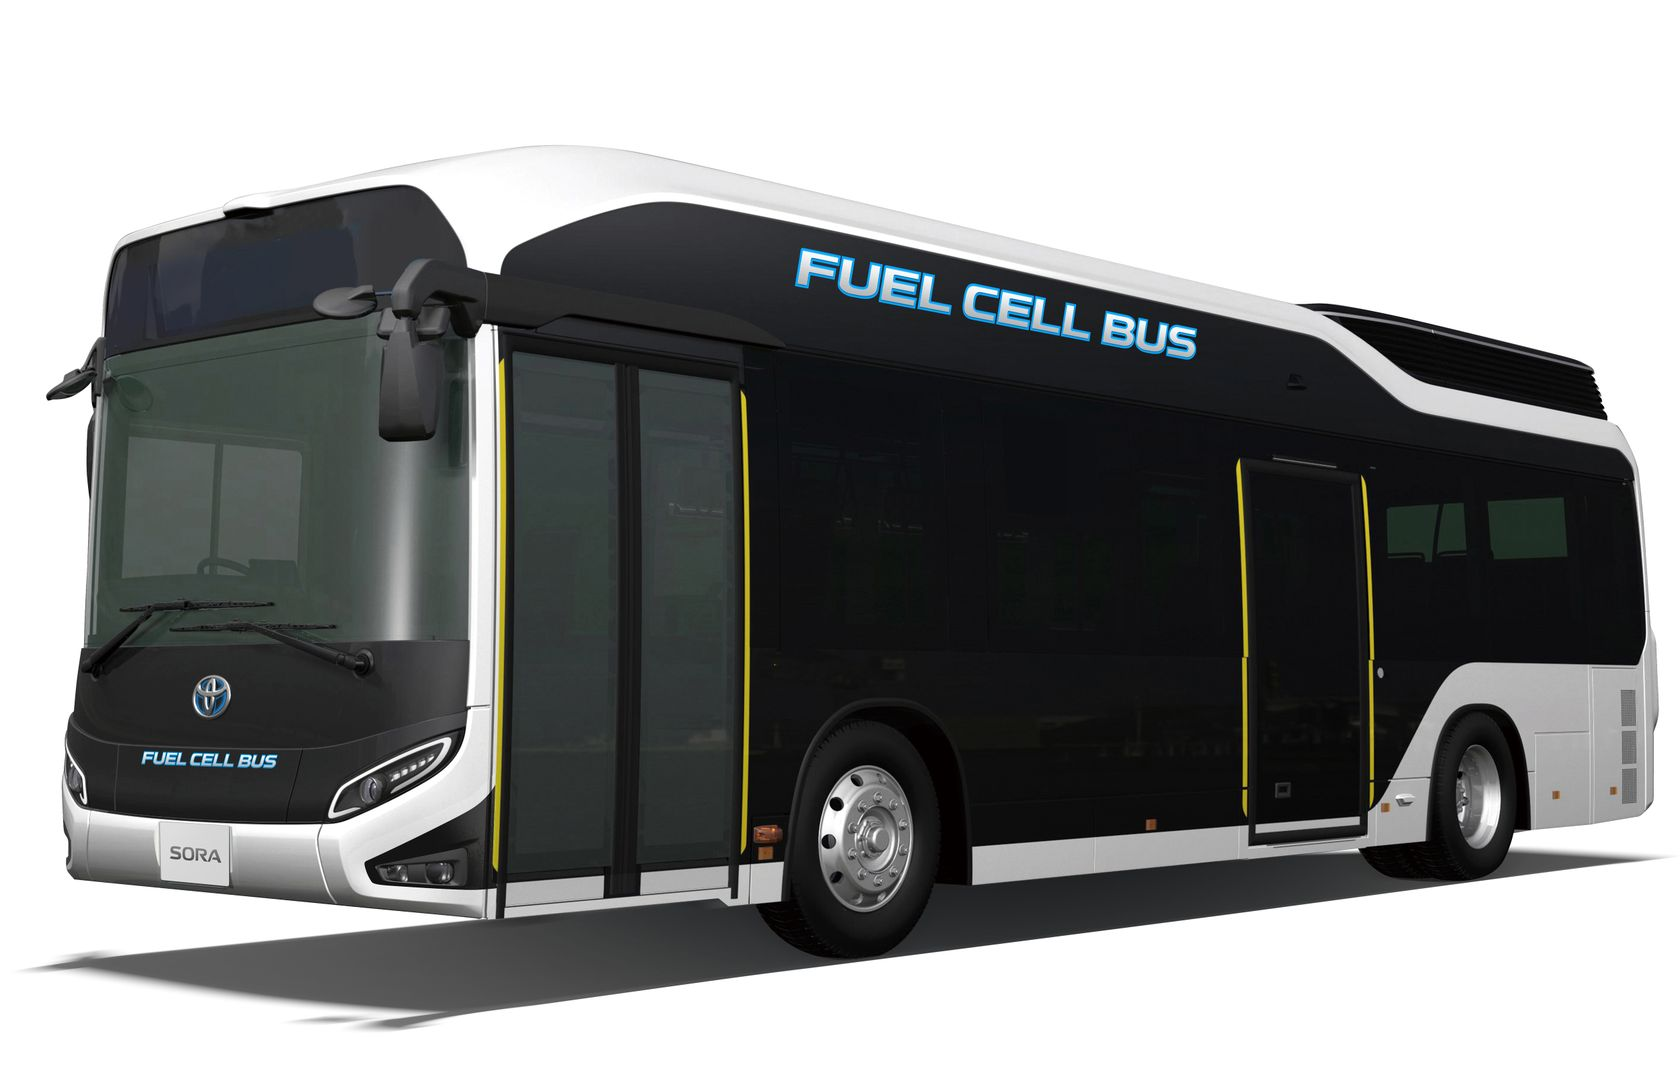 Fuel cell bus SORA